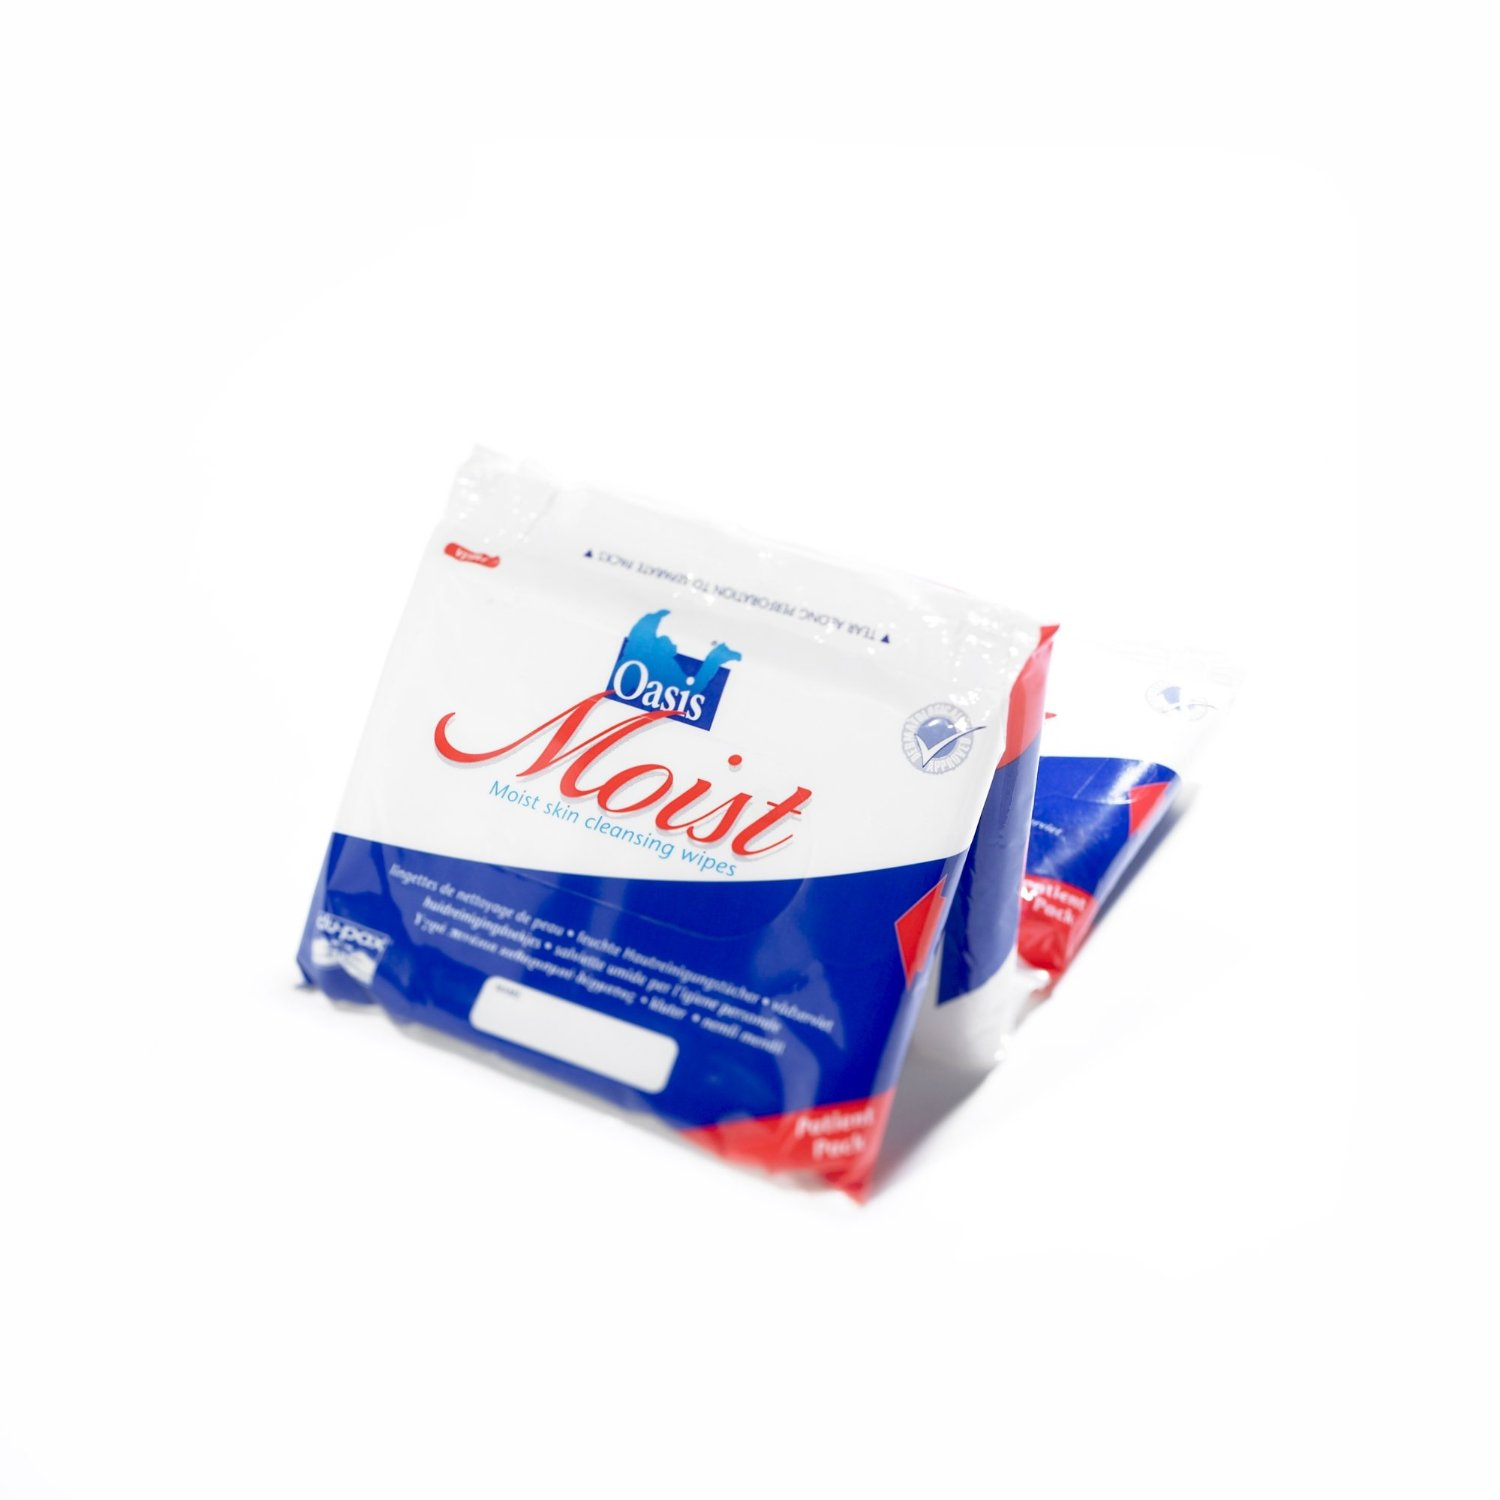 Vernacare Conti Moist Cleansing Wipes Refill